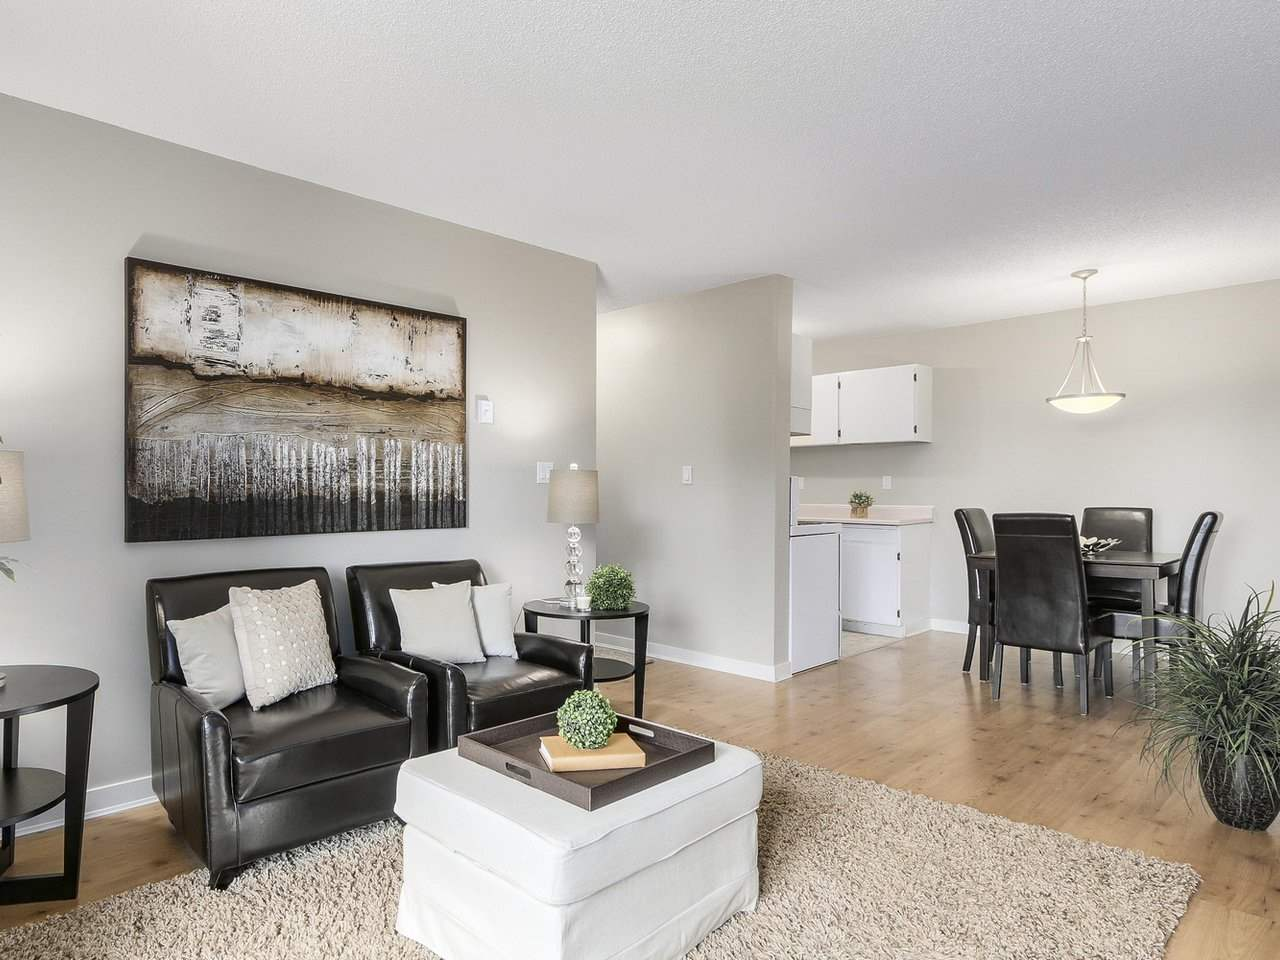 "Photo 5: 309 1121 HOWIE Avenue in Coquitlam: Central Coquitlam Condo for sale in ""THE WILLOWS"" : MLS(r) # R2179241"